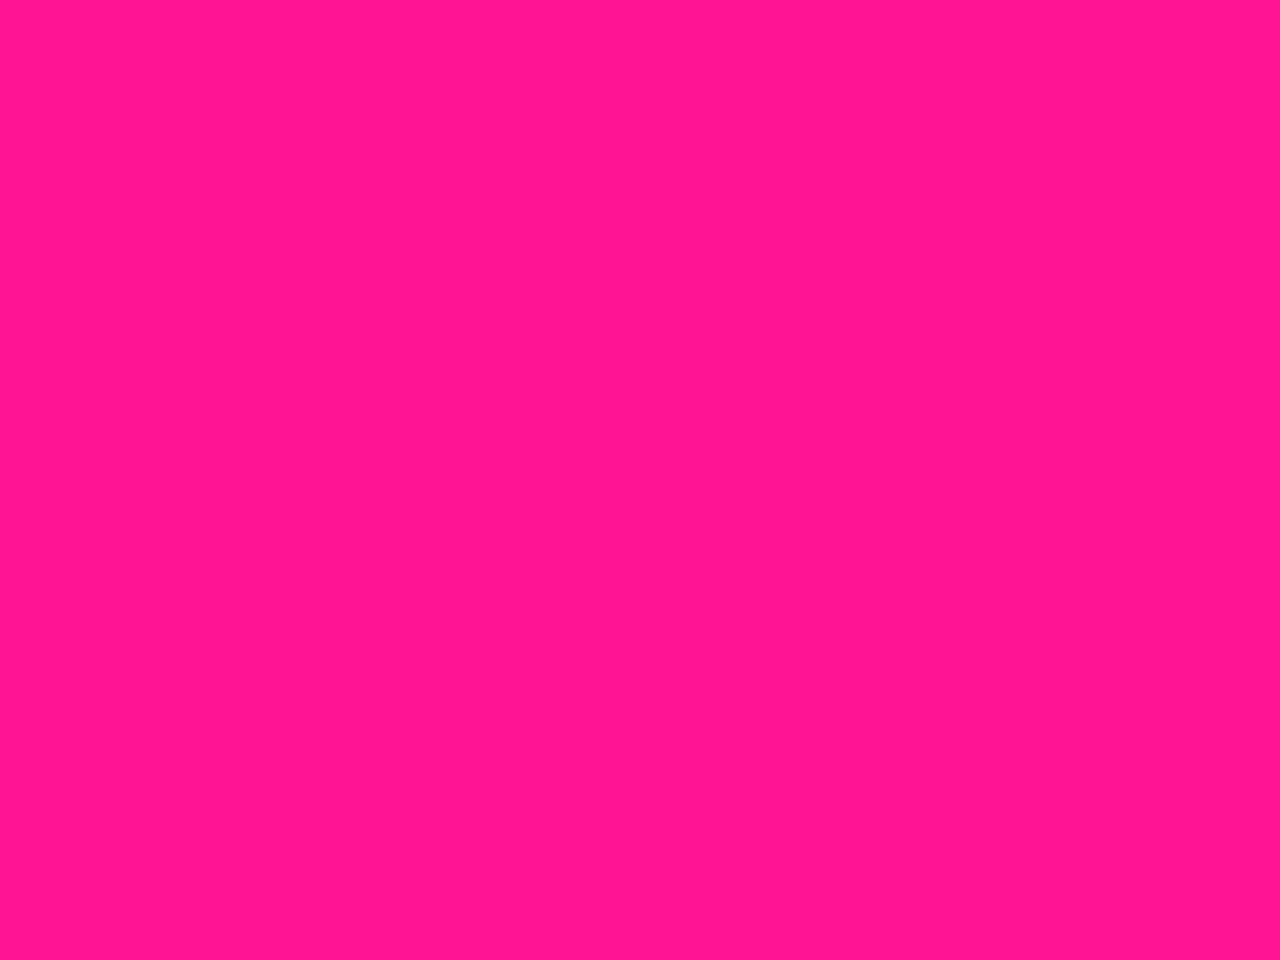 1280x960 Fluorescent Pink Solid Color Background